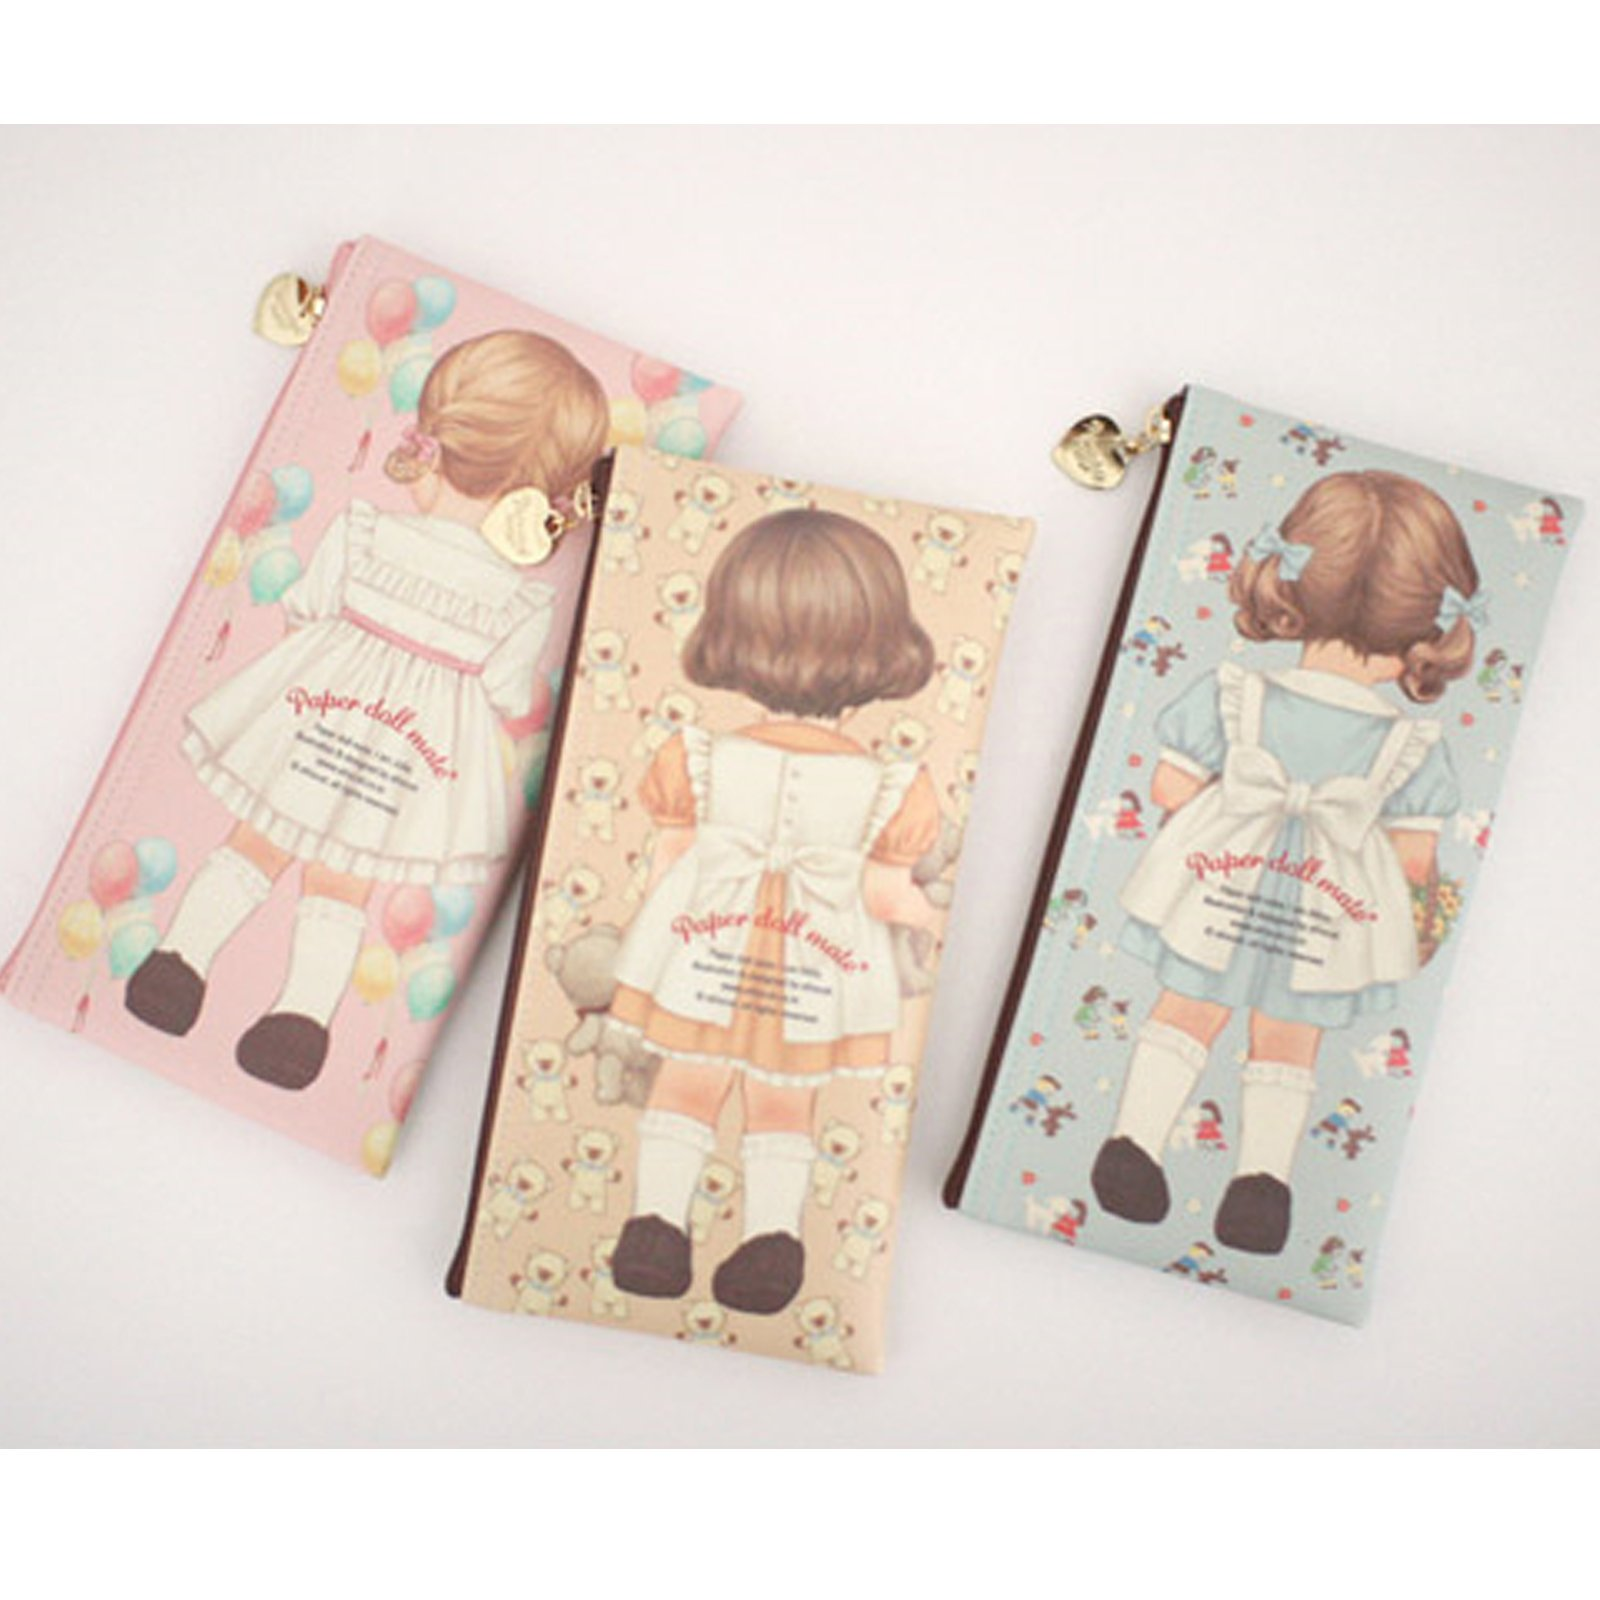 paperdollmate pencase ver011_toy Julie by paper doll mate (Image #5)